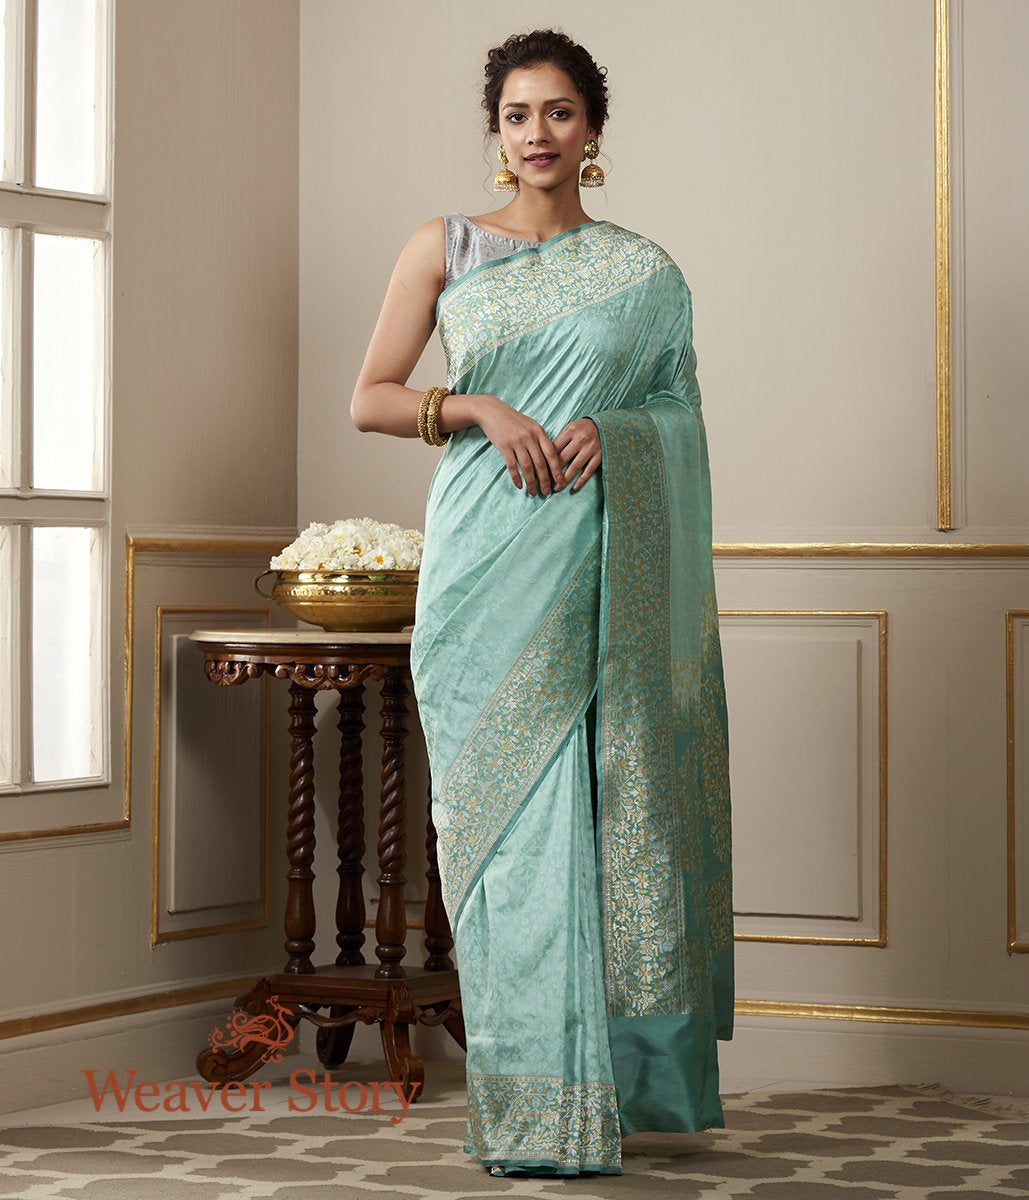 Handwoven Sea Green Banarasi Tanchoi Saree with Kadhwa Border with Woven Leaf Motifs